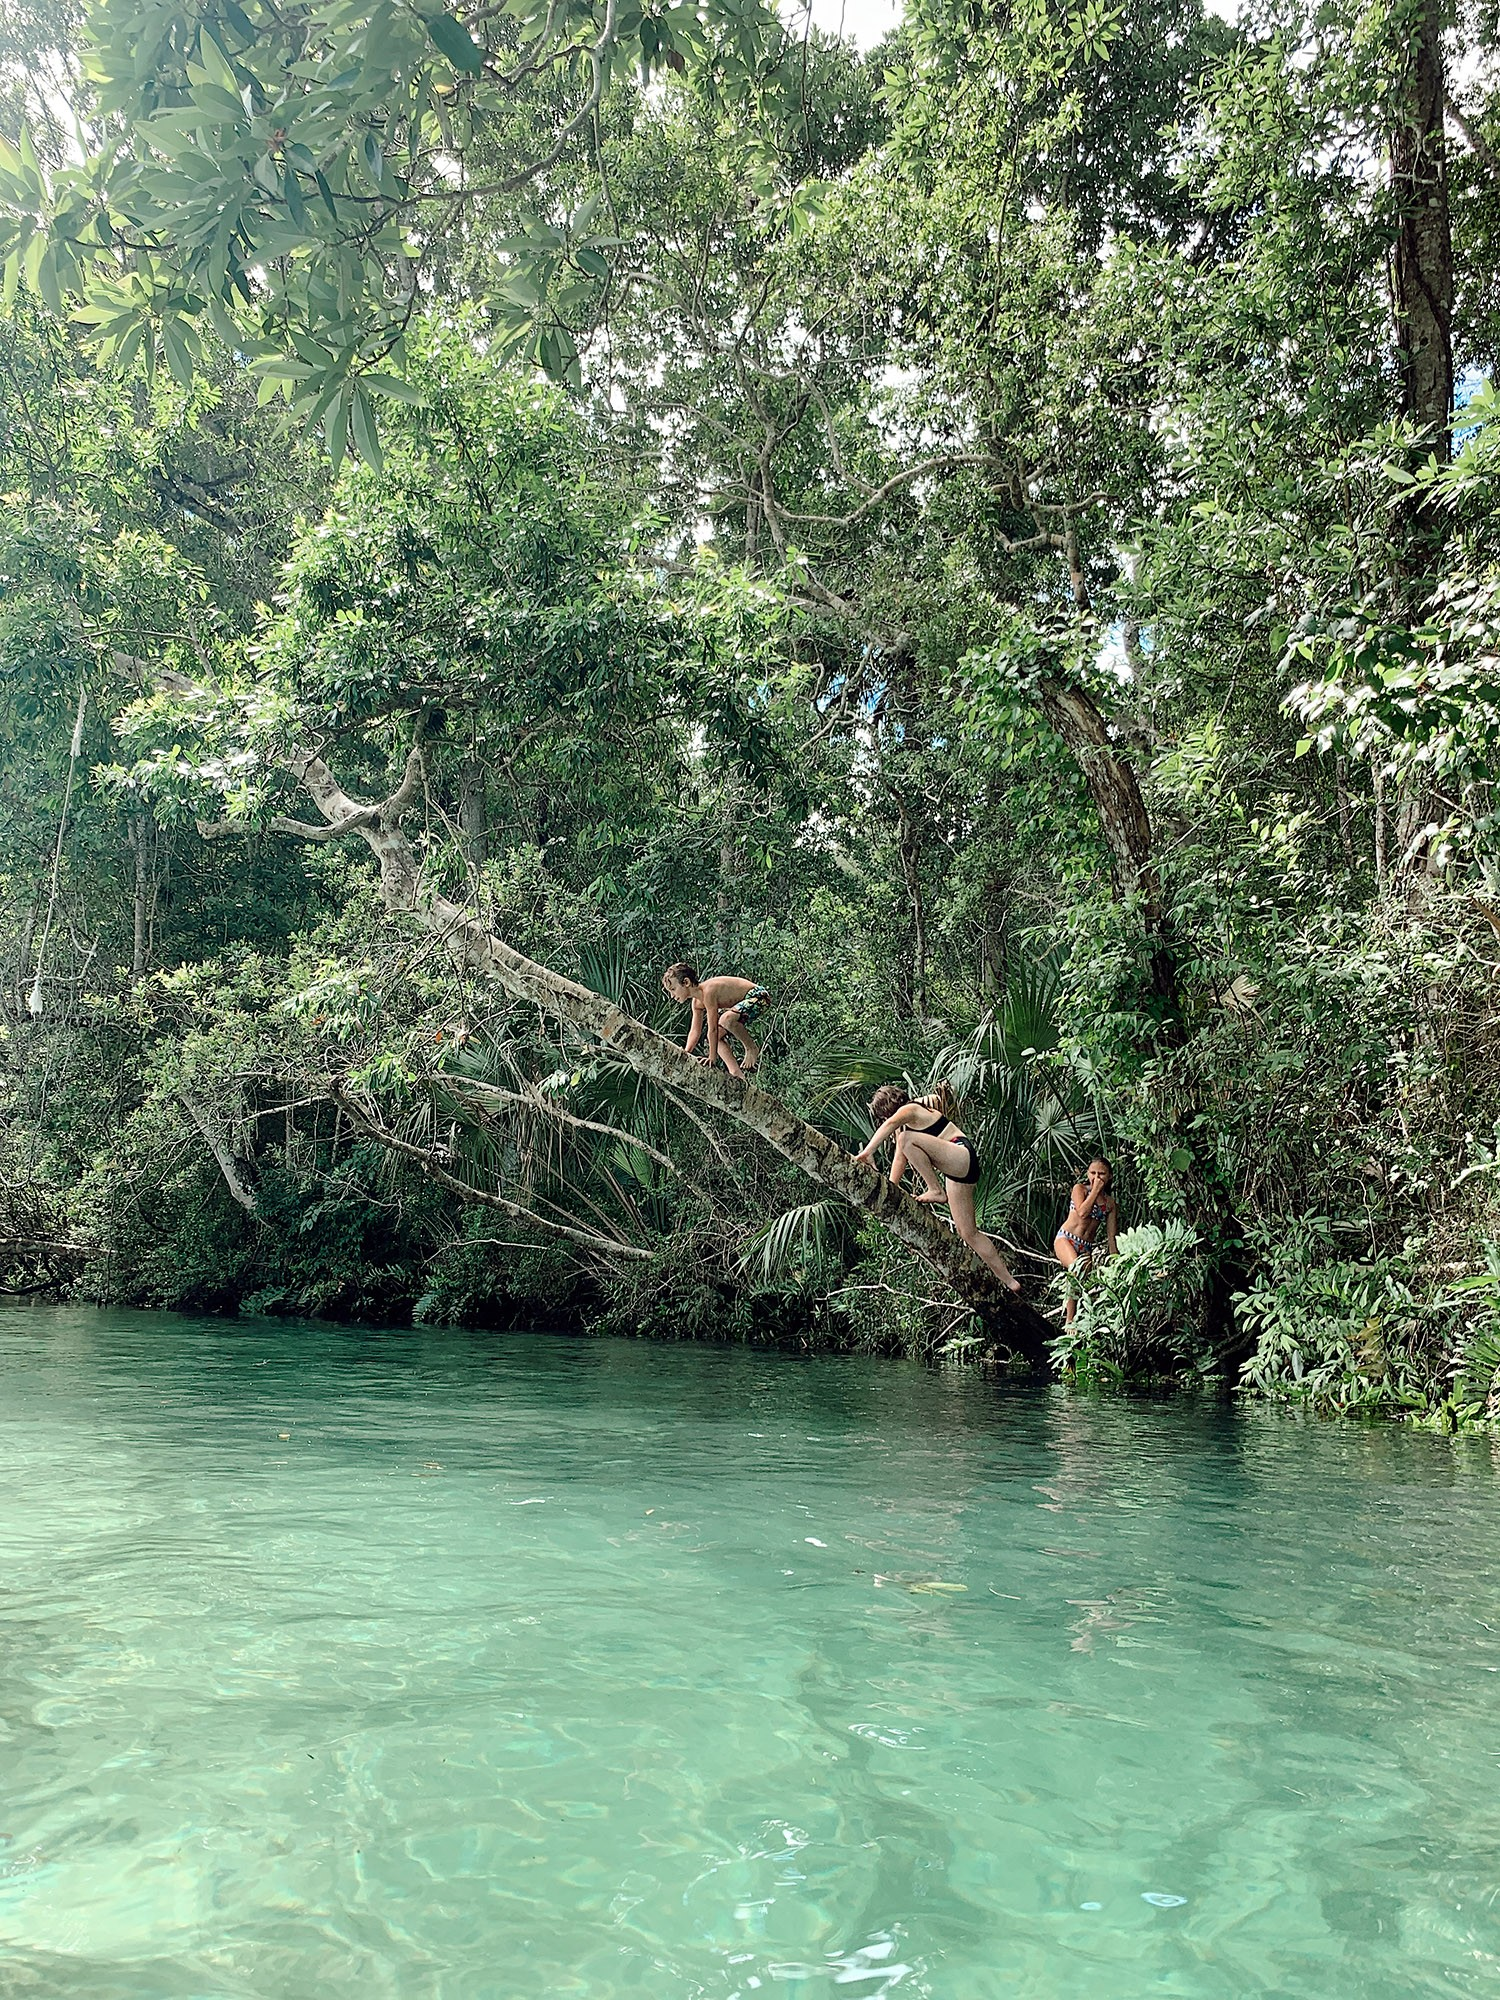 Tips for an Amazing Weeki Wachee Kayaking Florida Staycation. Visit Florida Travel ideas from top lifestyle blogger Tabitha Blue of Fresh Mommy Blog. | Weeki Wachee Kayaking by popular Florida blog, Fresh Mommy Blog: image of a group of kids climbing on a tree and playing in the water.